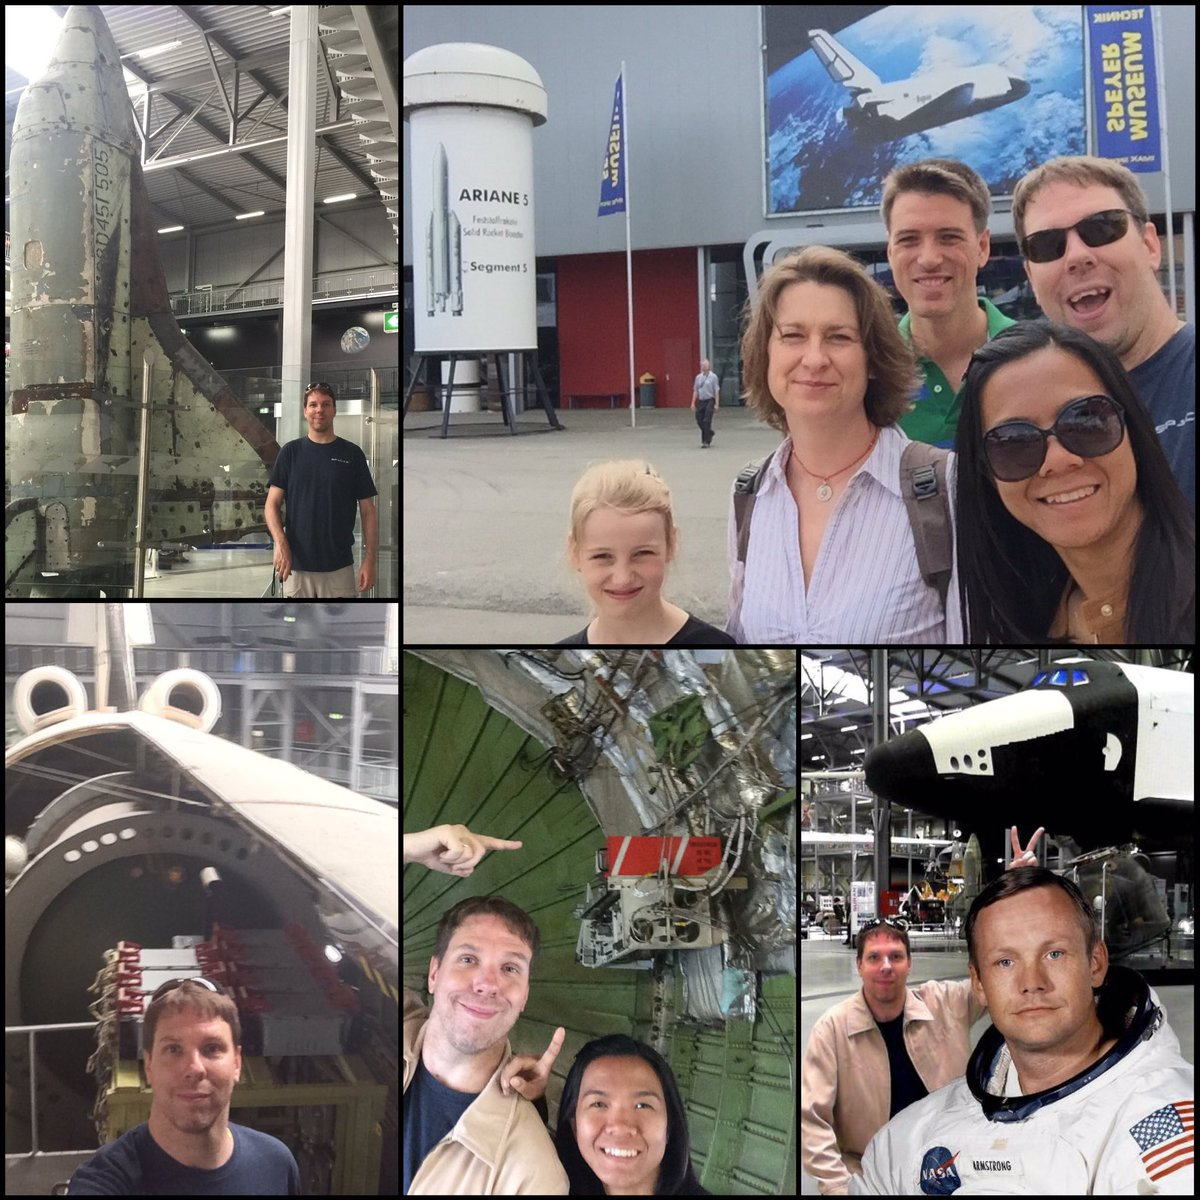 Saw the Buran (Russian version of the space shuttle) in Germany. Now to Athens, then Warsaw, finally home of the 9th https://t.co/RJqkTJwNEe